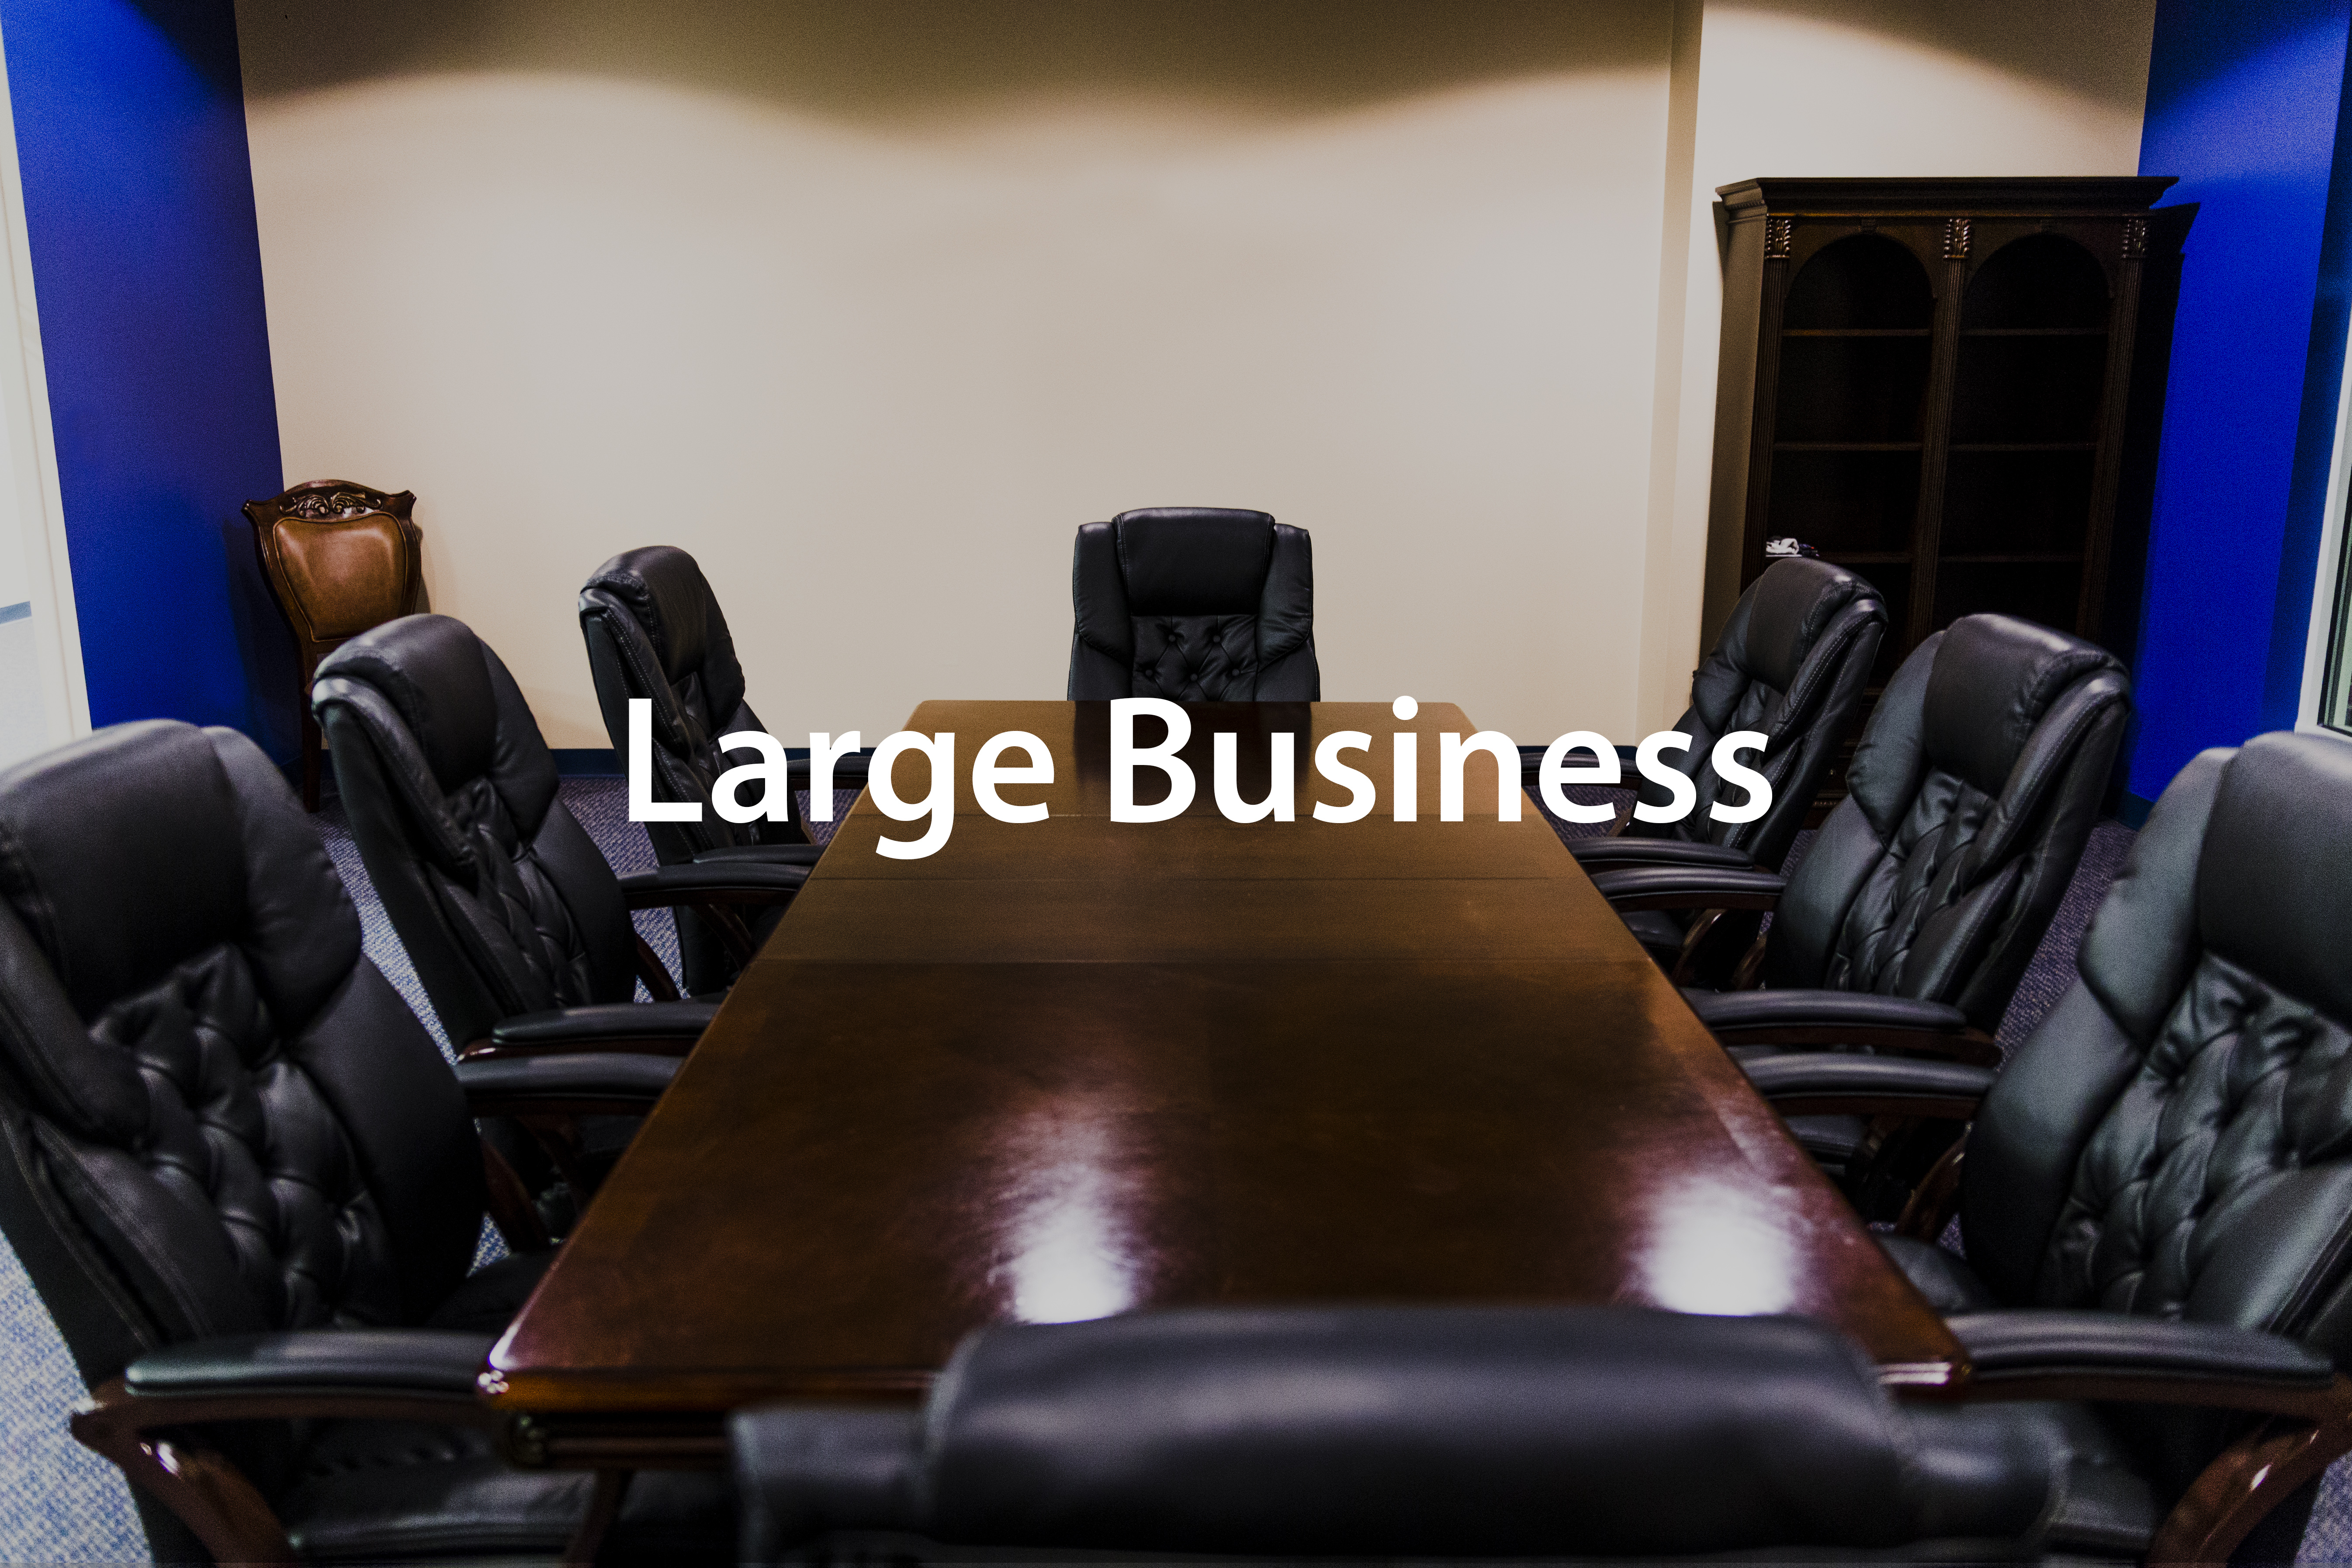 Large Business